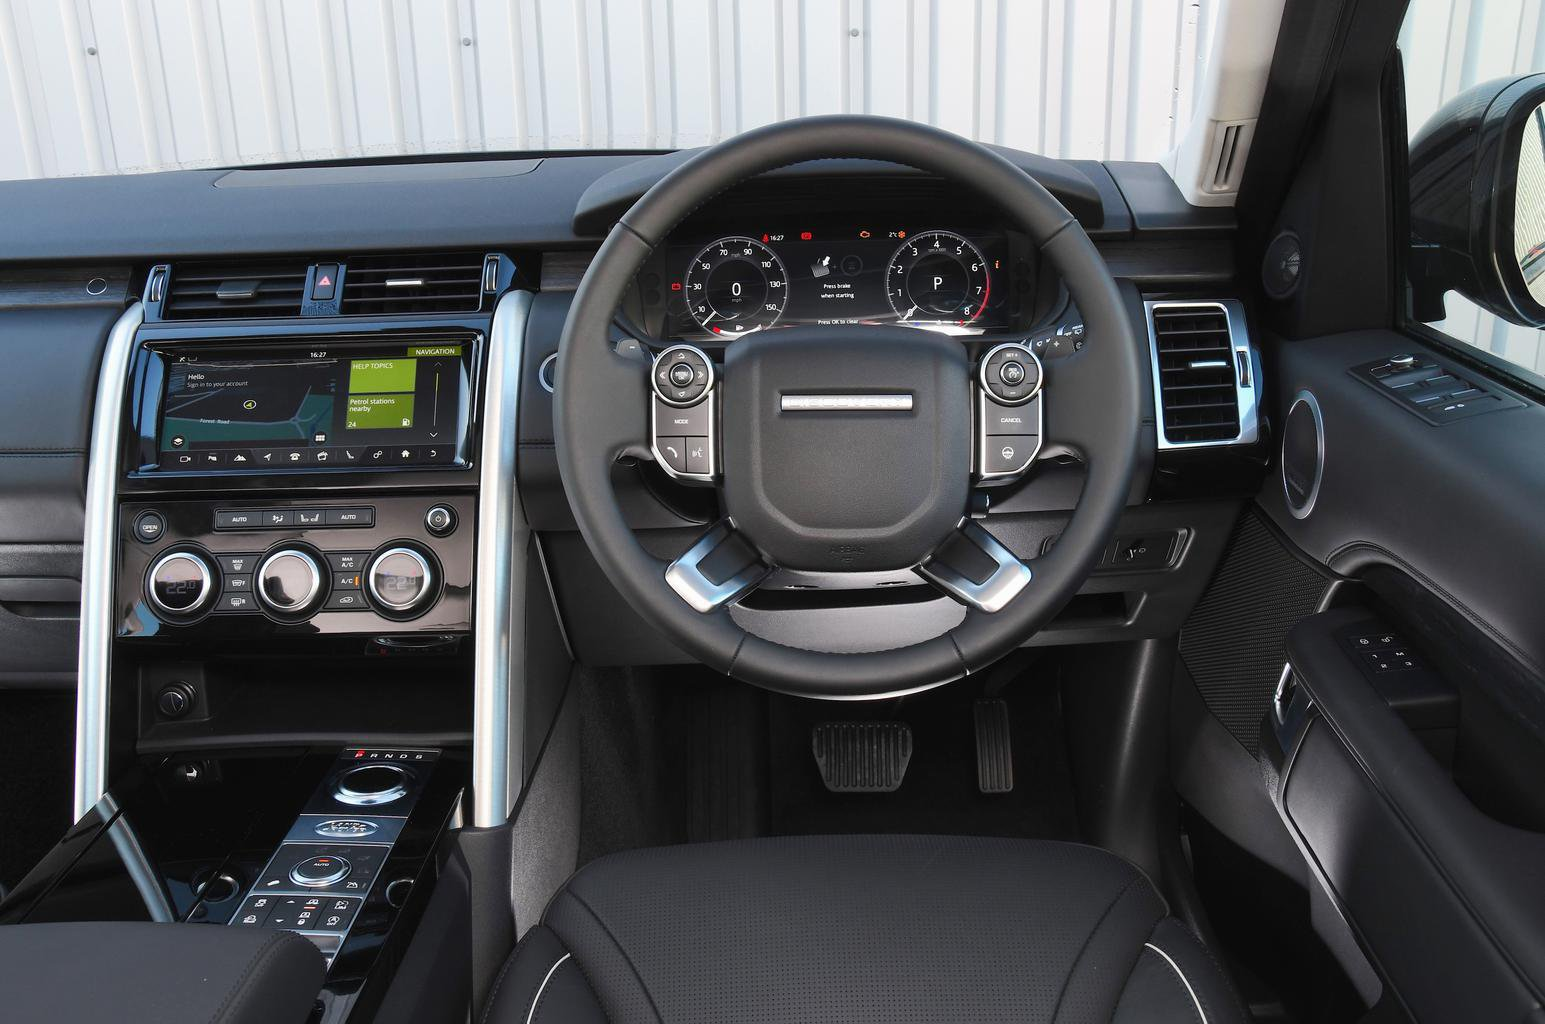 2018 Land Rover Discovery 3.0 TD6 SE - interior